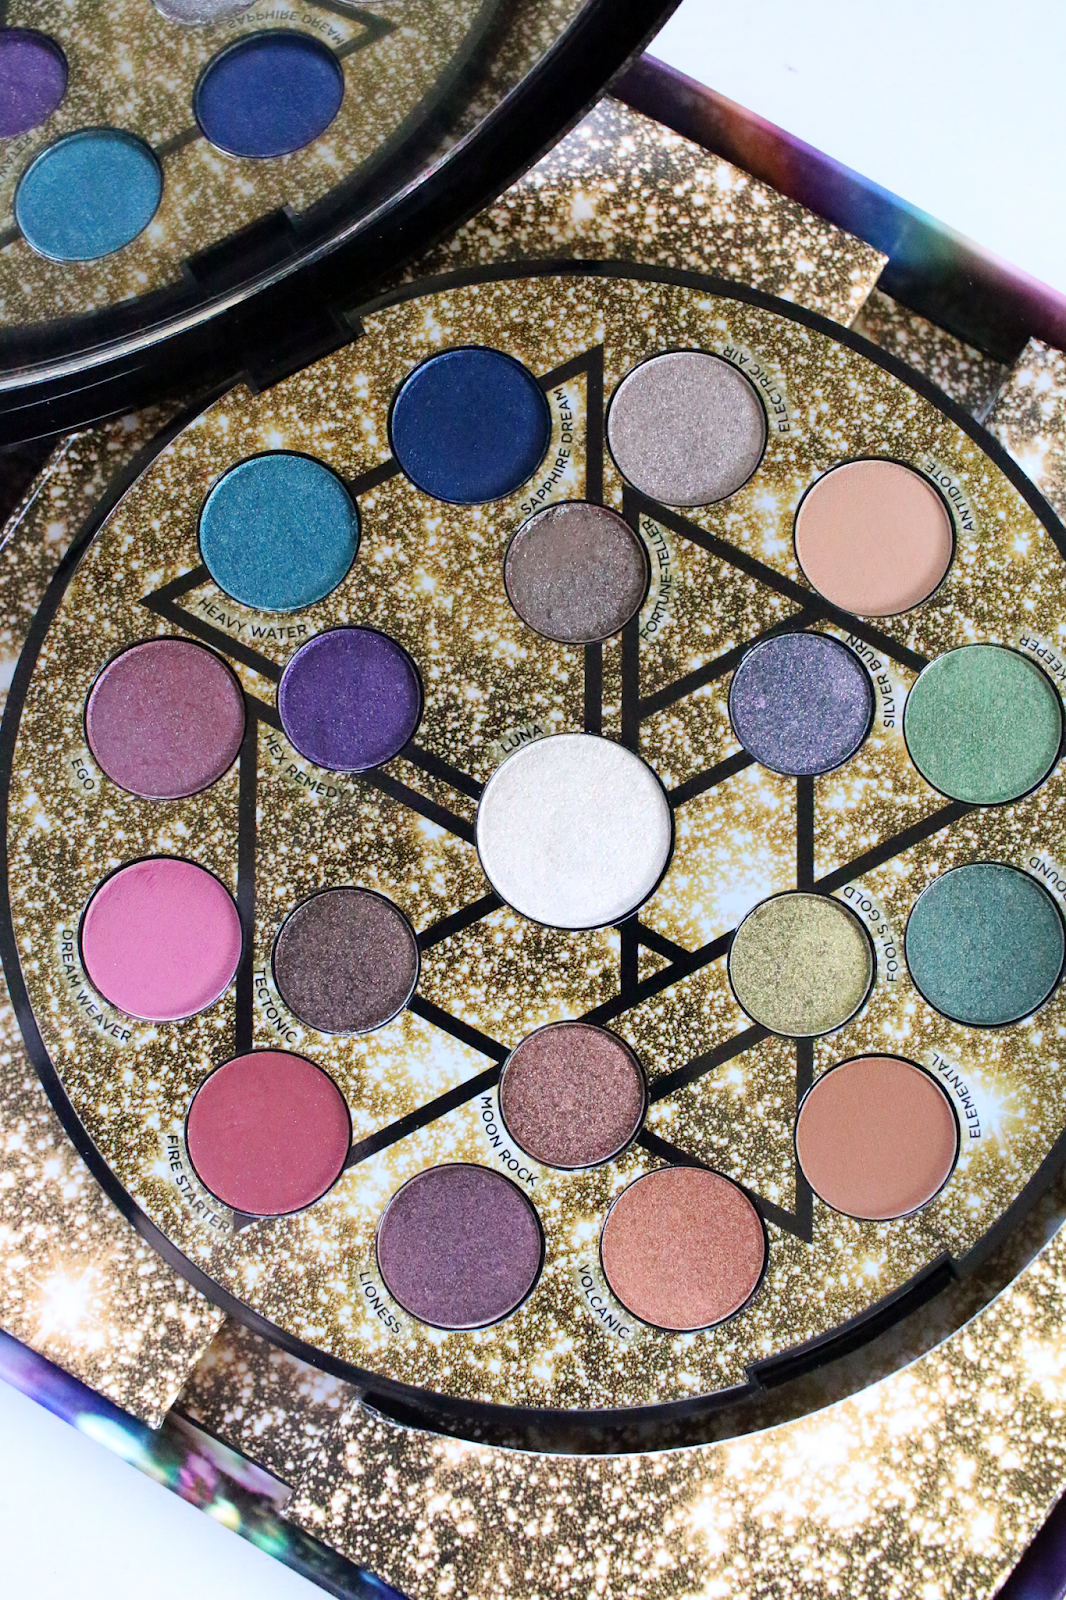 New Urban Decay Elements Eyeshadow Palette Review